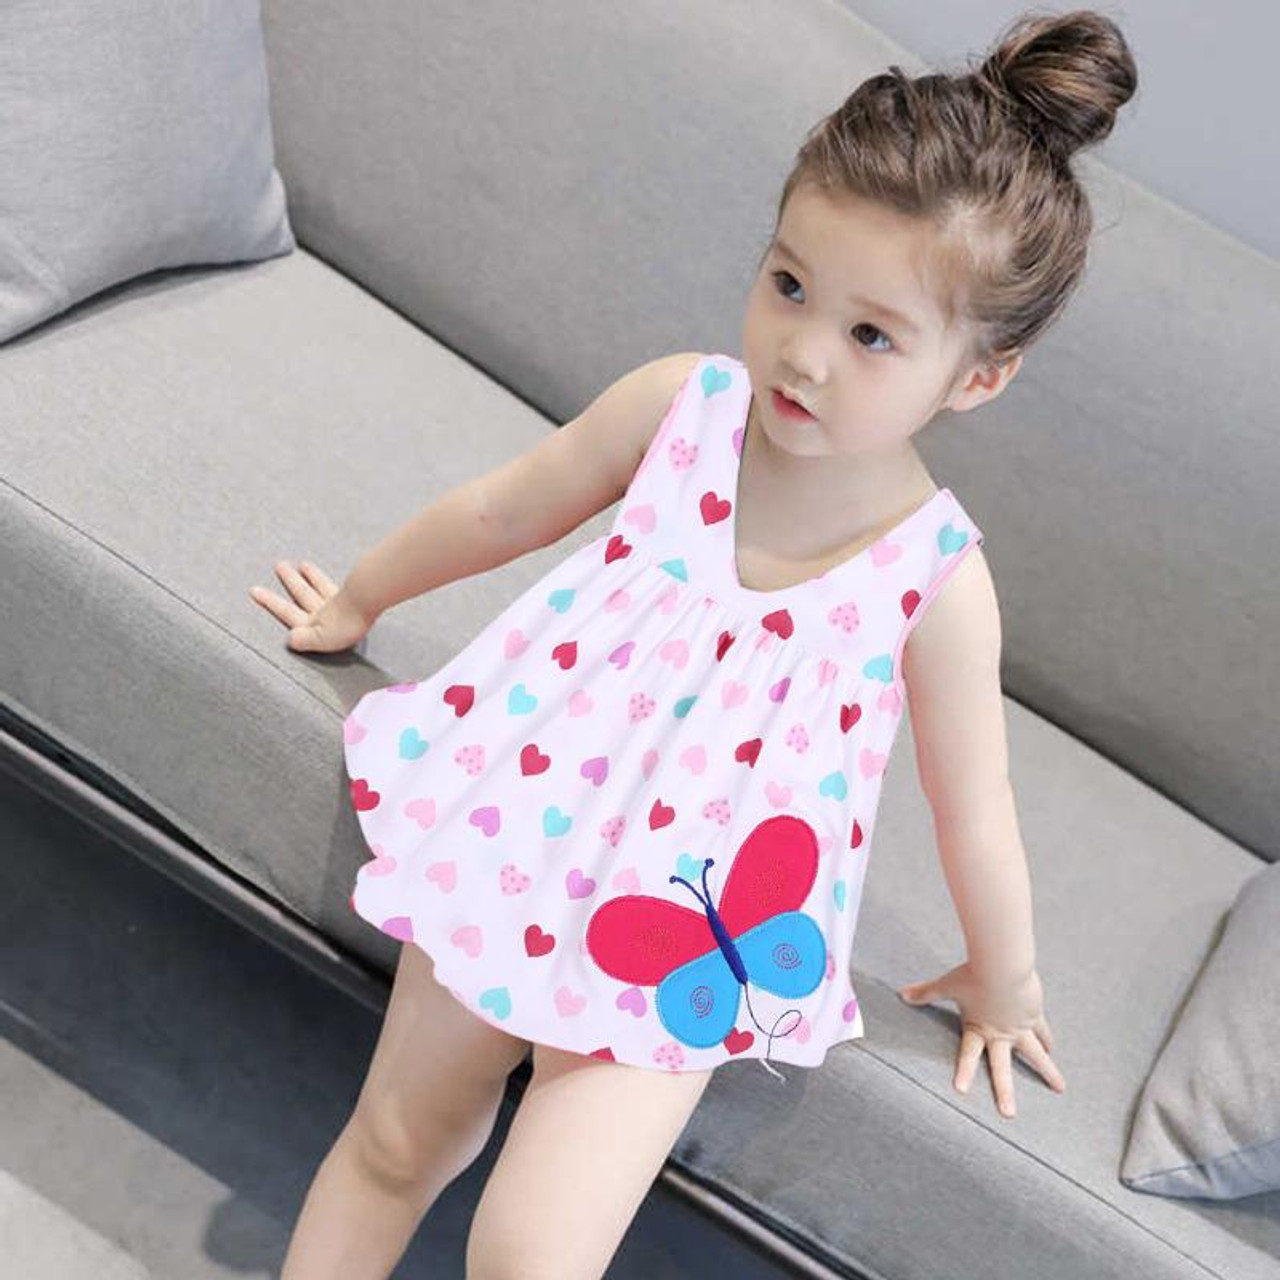 07f293775b 0-2T Fashion Summer Dress for Girl Baby Sleeveless Cotton Princess Dress  for Girls Cute Pattern Decor Dot Summer Dresses Clothes